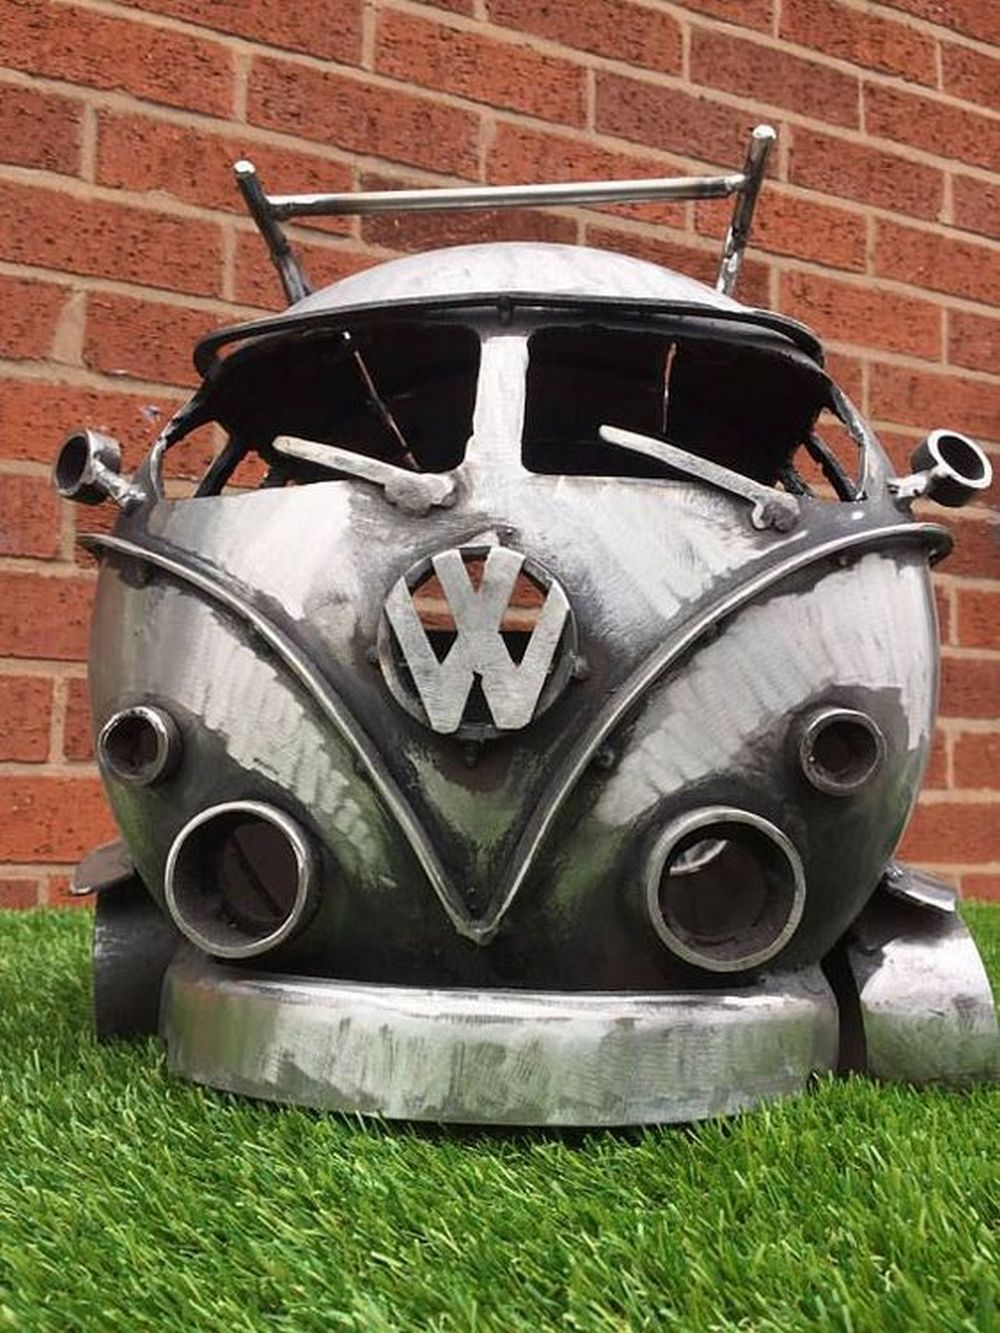 Feuerkorb Vw Bus Turn A Propane Tank Into A Vw Bus Fire Pit Outside Fire